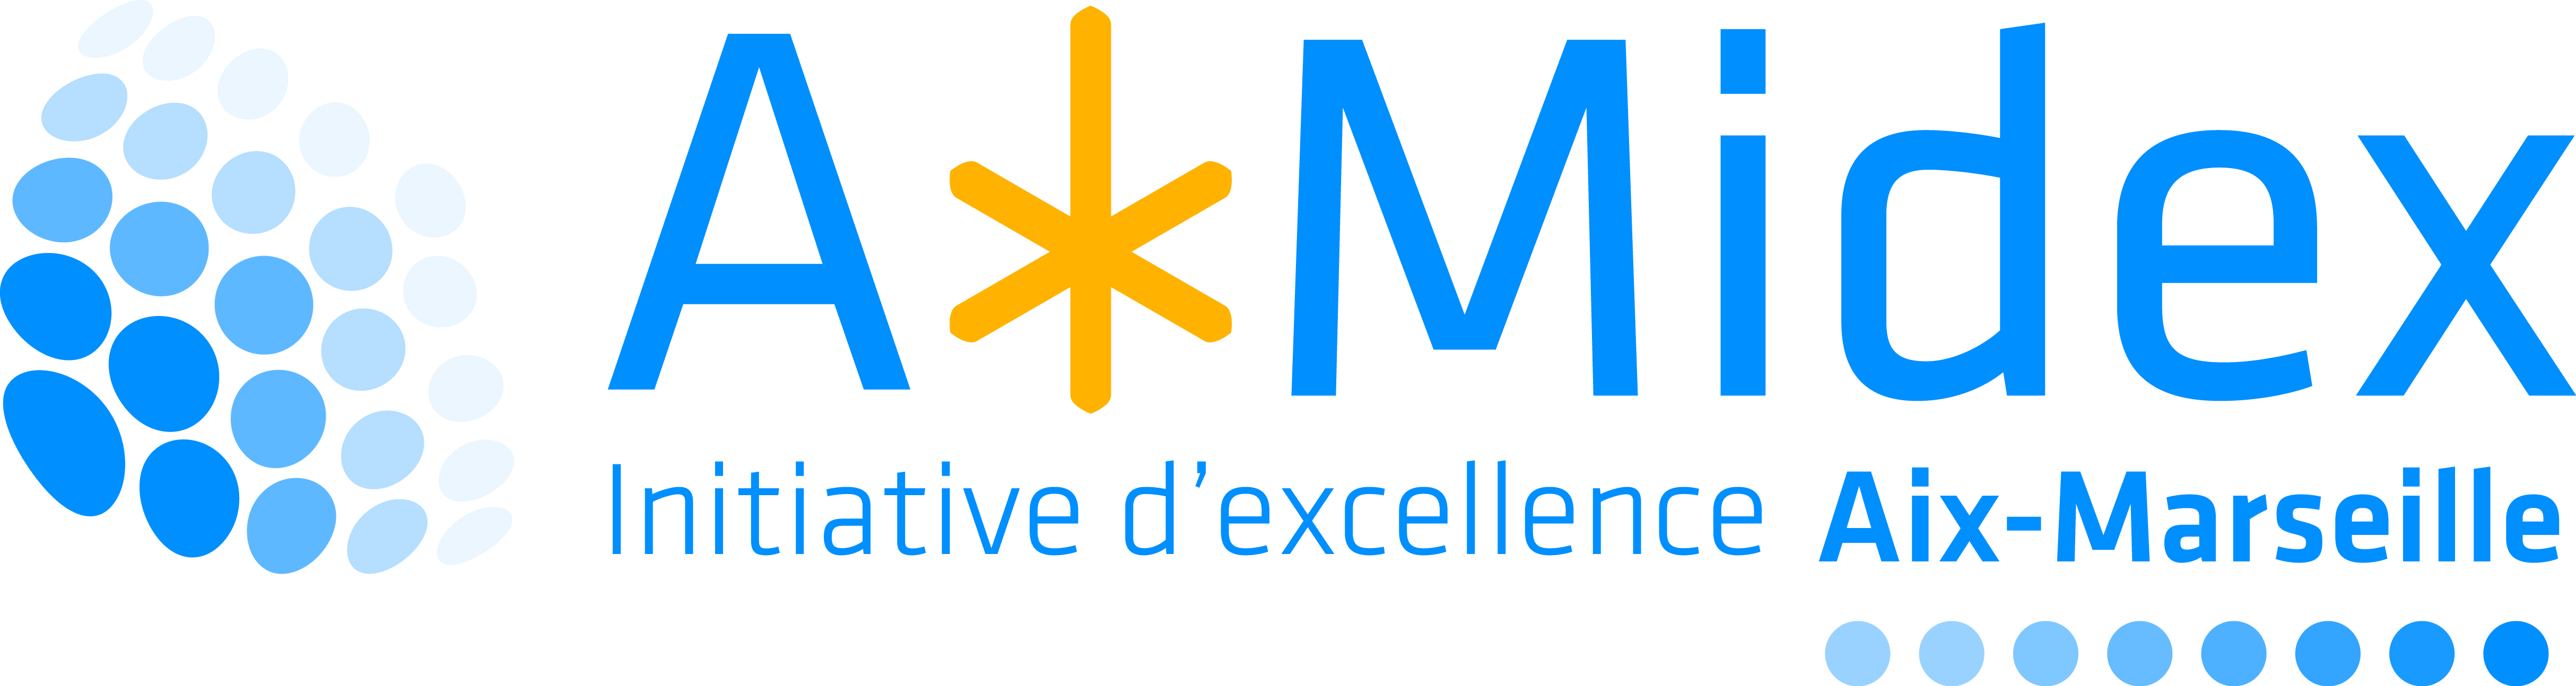 Aix-Marseille Initiative D'Excellence